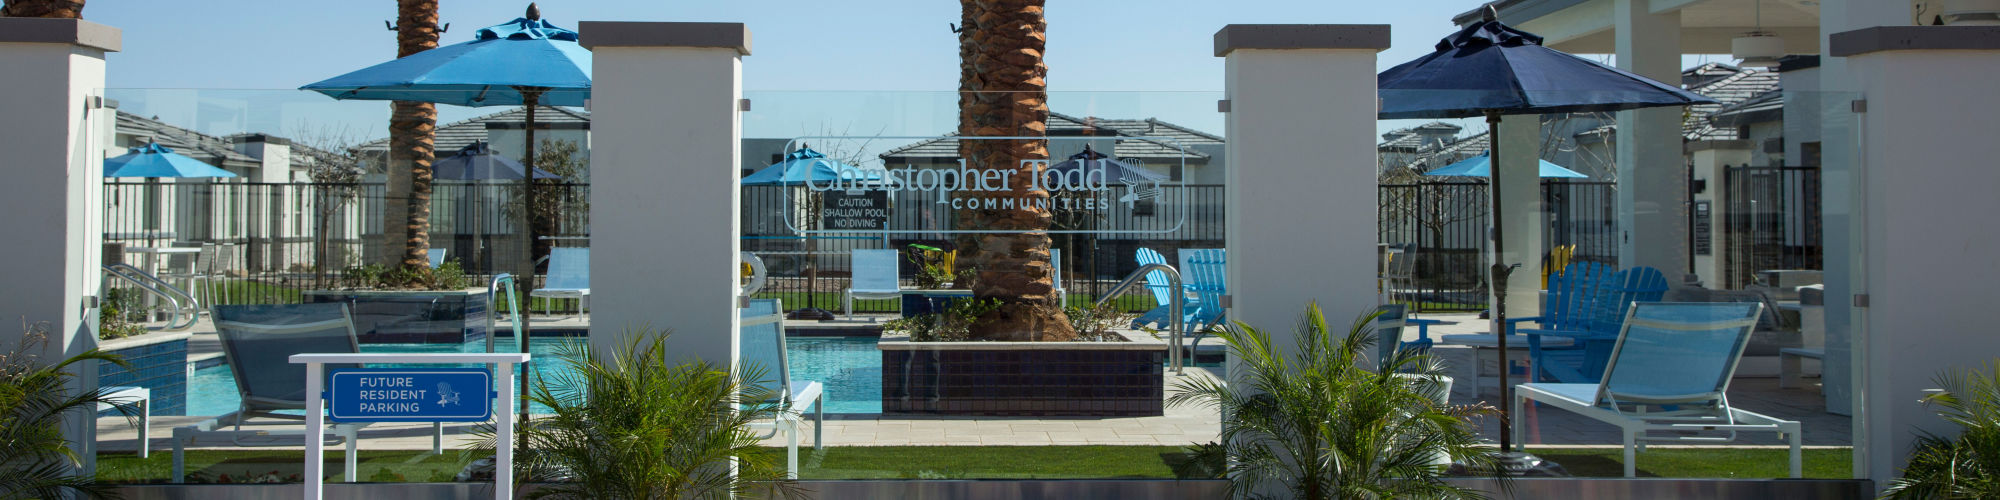 Map & Directions to Christopher Todd Communities on Greenway in Surprise, Arizona